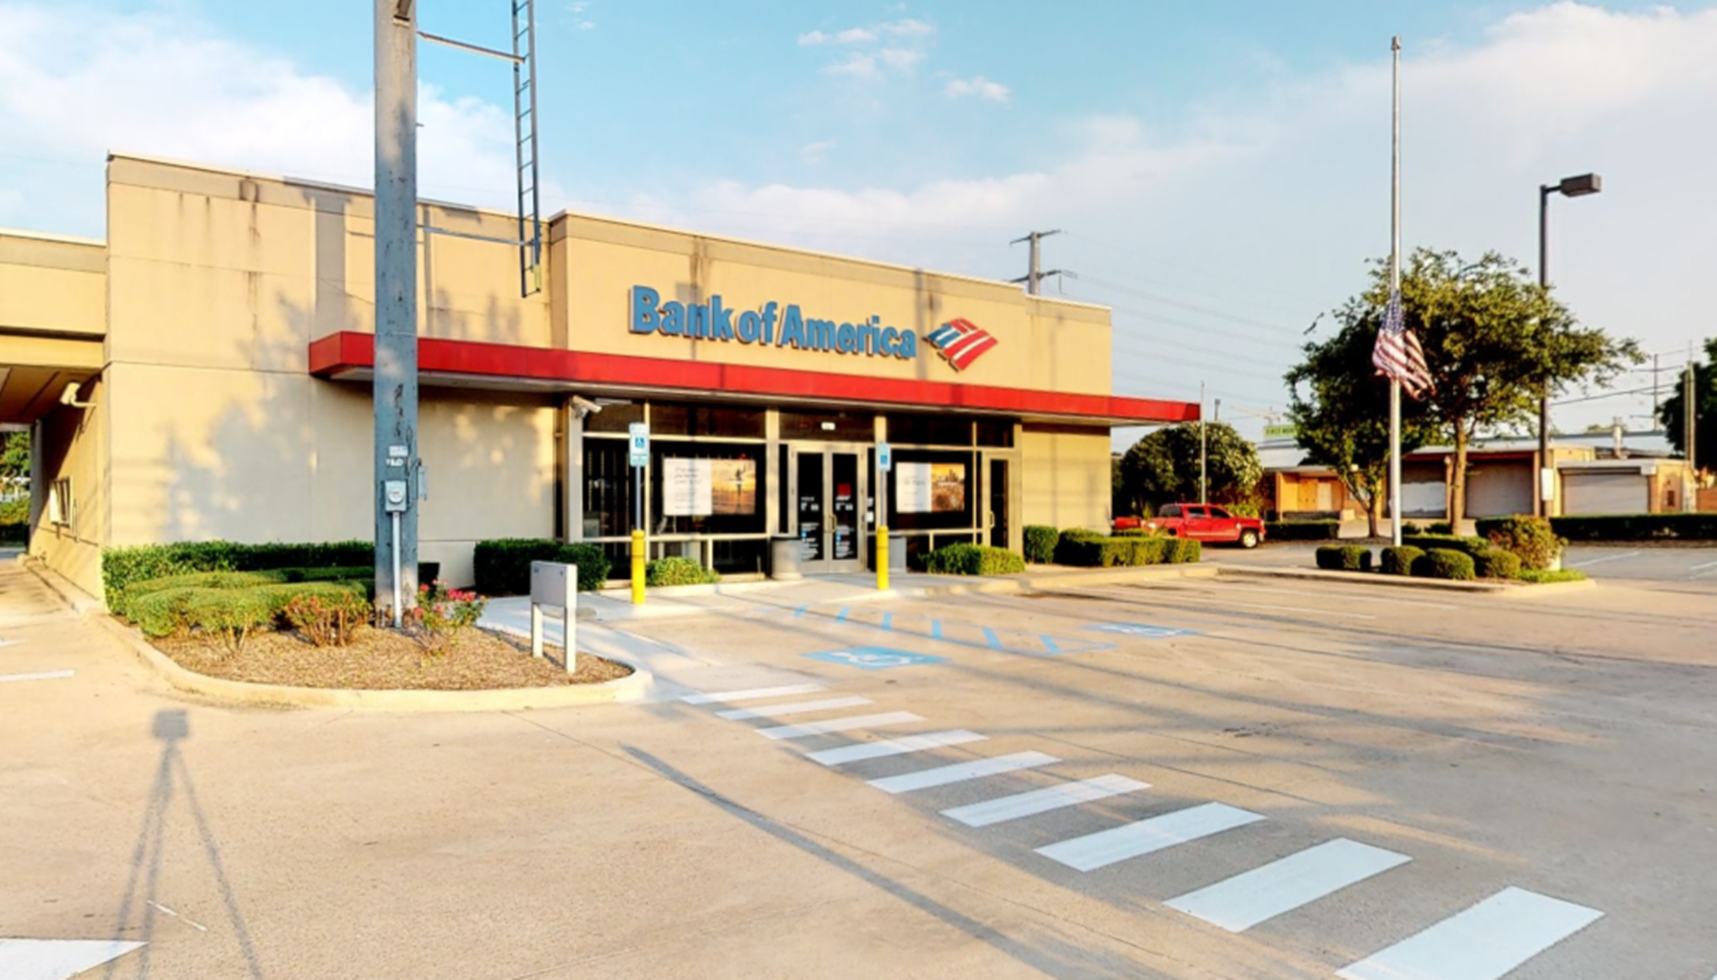 Bank of America financial center with drive-thru ATM | 6750 Greenville Ave, Dallas, TX 75231